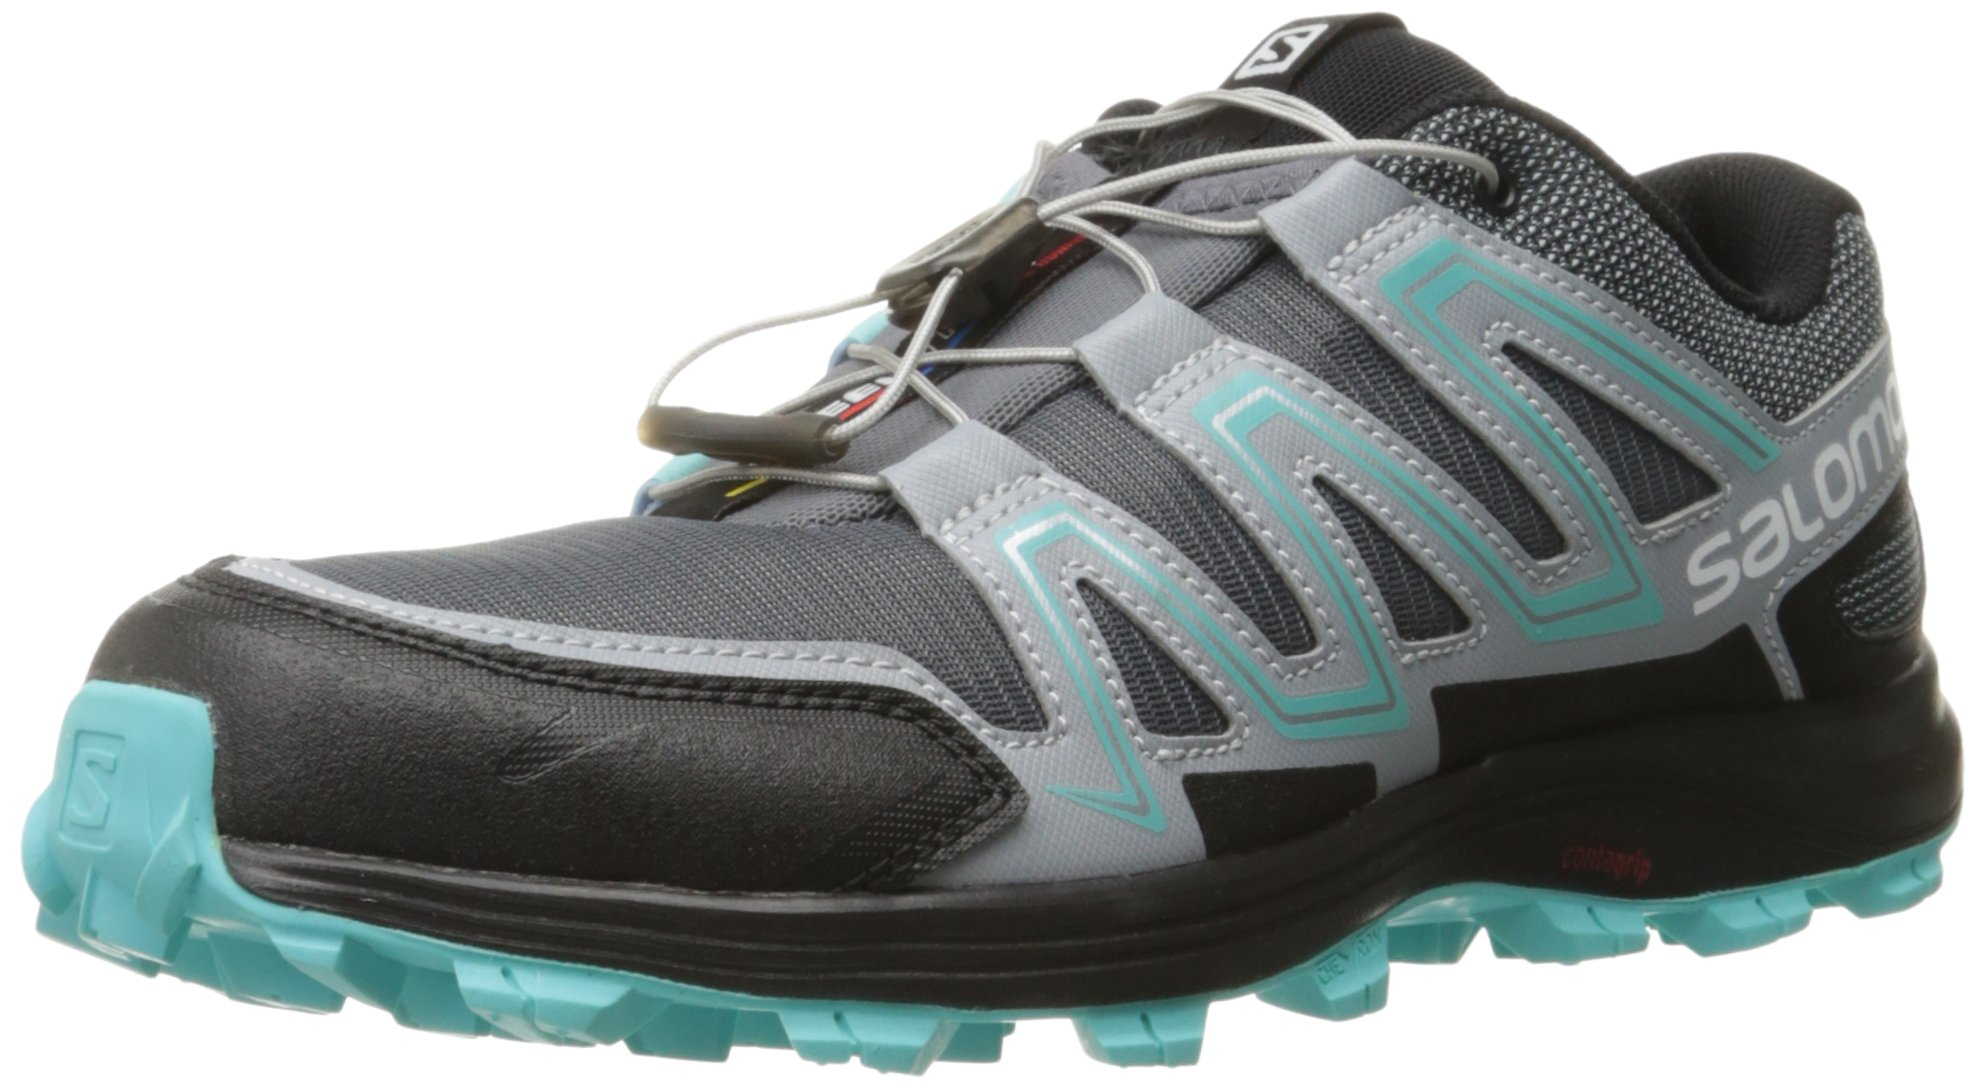 Salomon Women's Speedtrak W Trail Runner, Dark Cloud/Light Onix/Bubble Blue, 11 M US